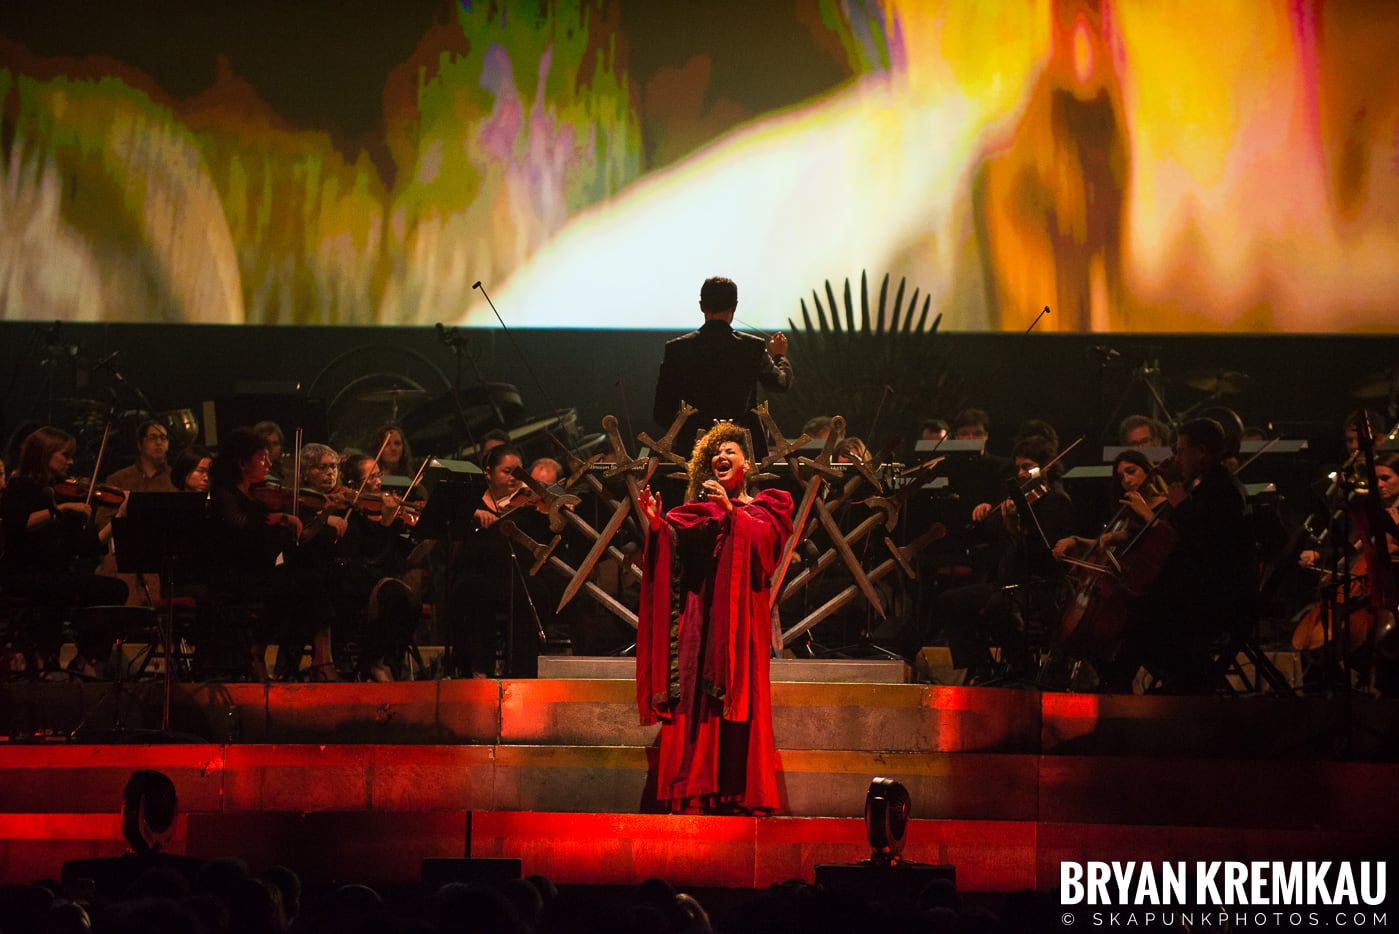 Game of Thrones Live Experience @ Prudential Center, Newark, NJ - 9.26.18 (3)